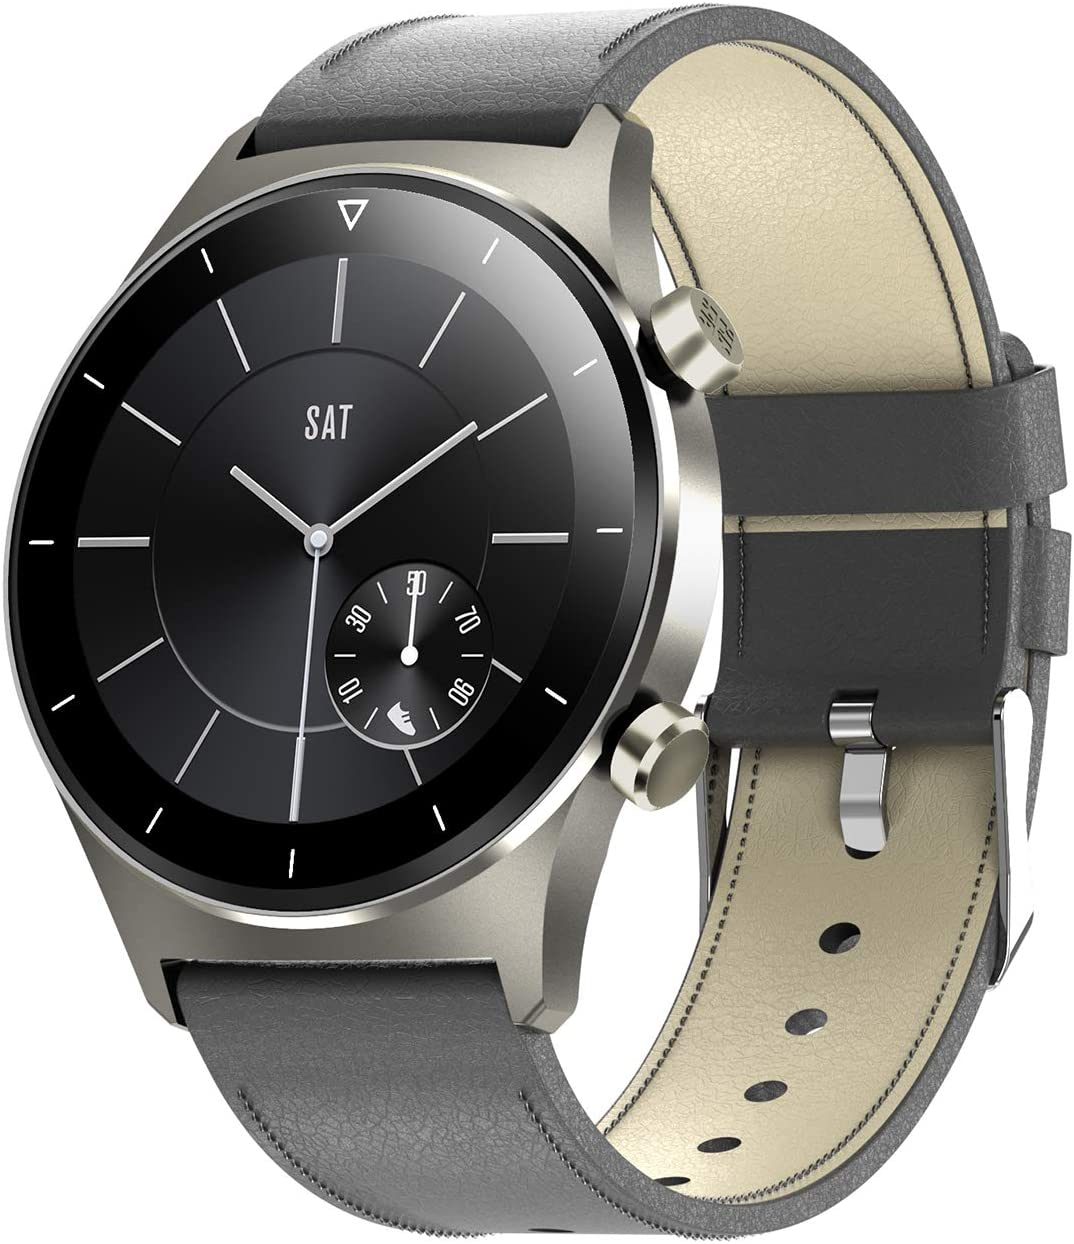 Smart Watch for Android Phones and IP68 Max 62% OFF - Waterproof Hea Bombing new work iPhone